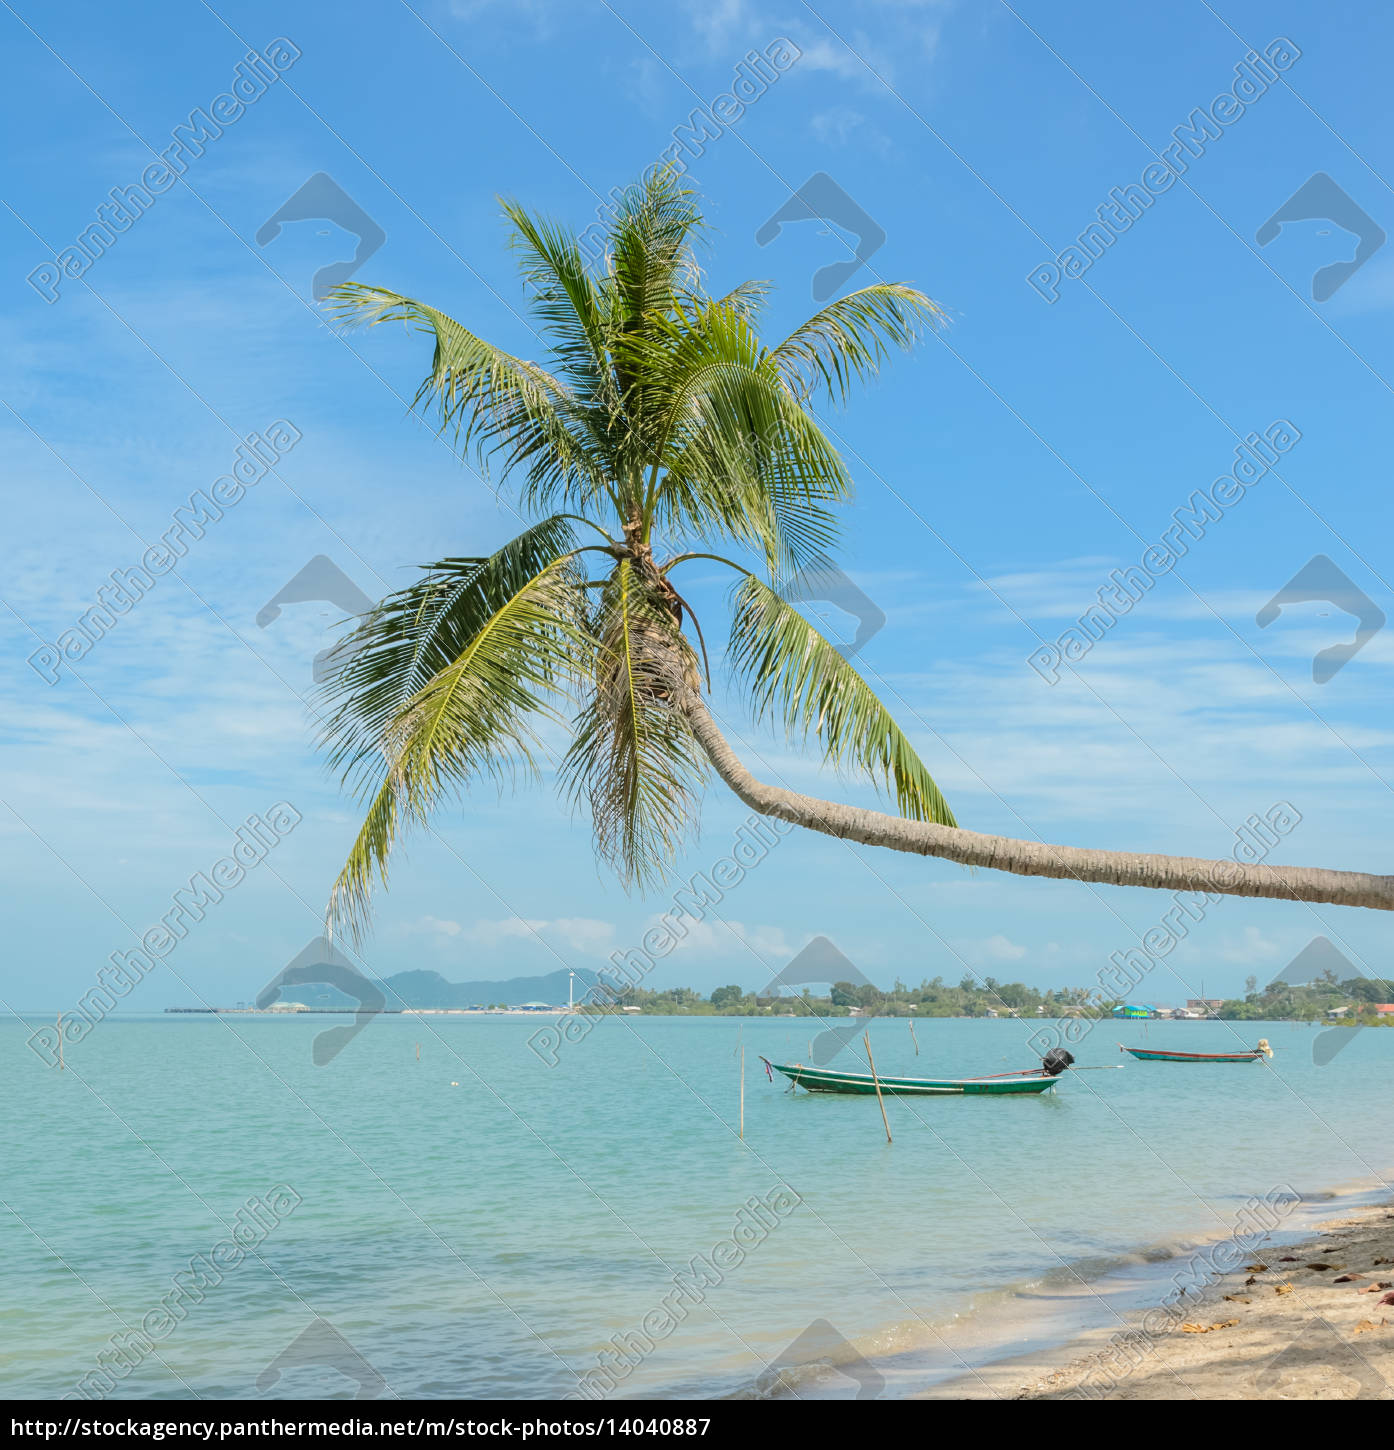 nature, background, of, sea, with, coconut - 14040887